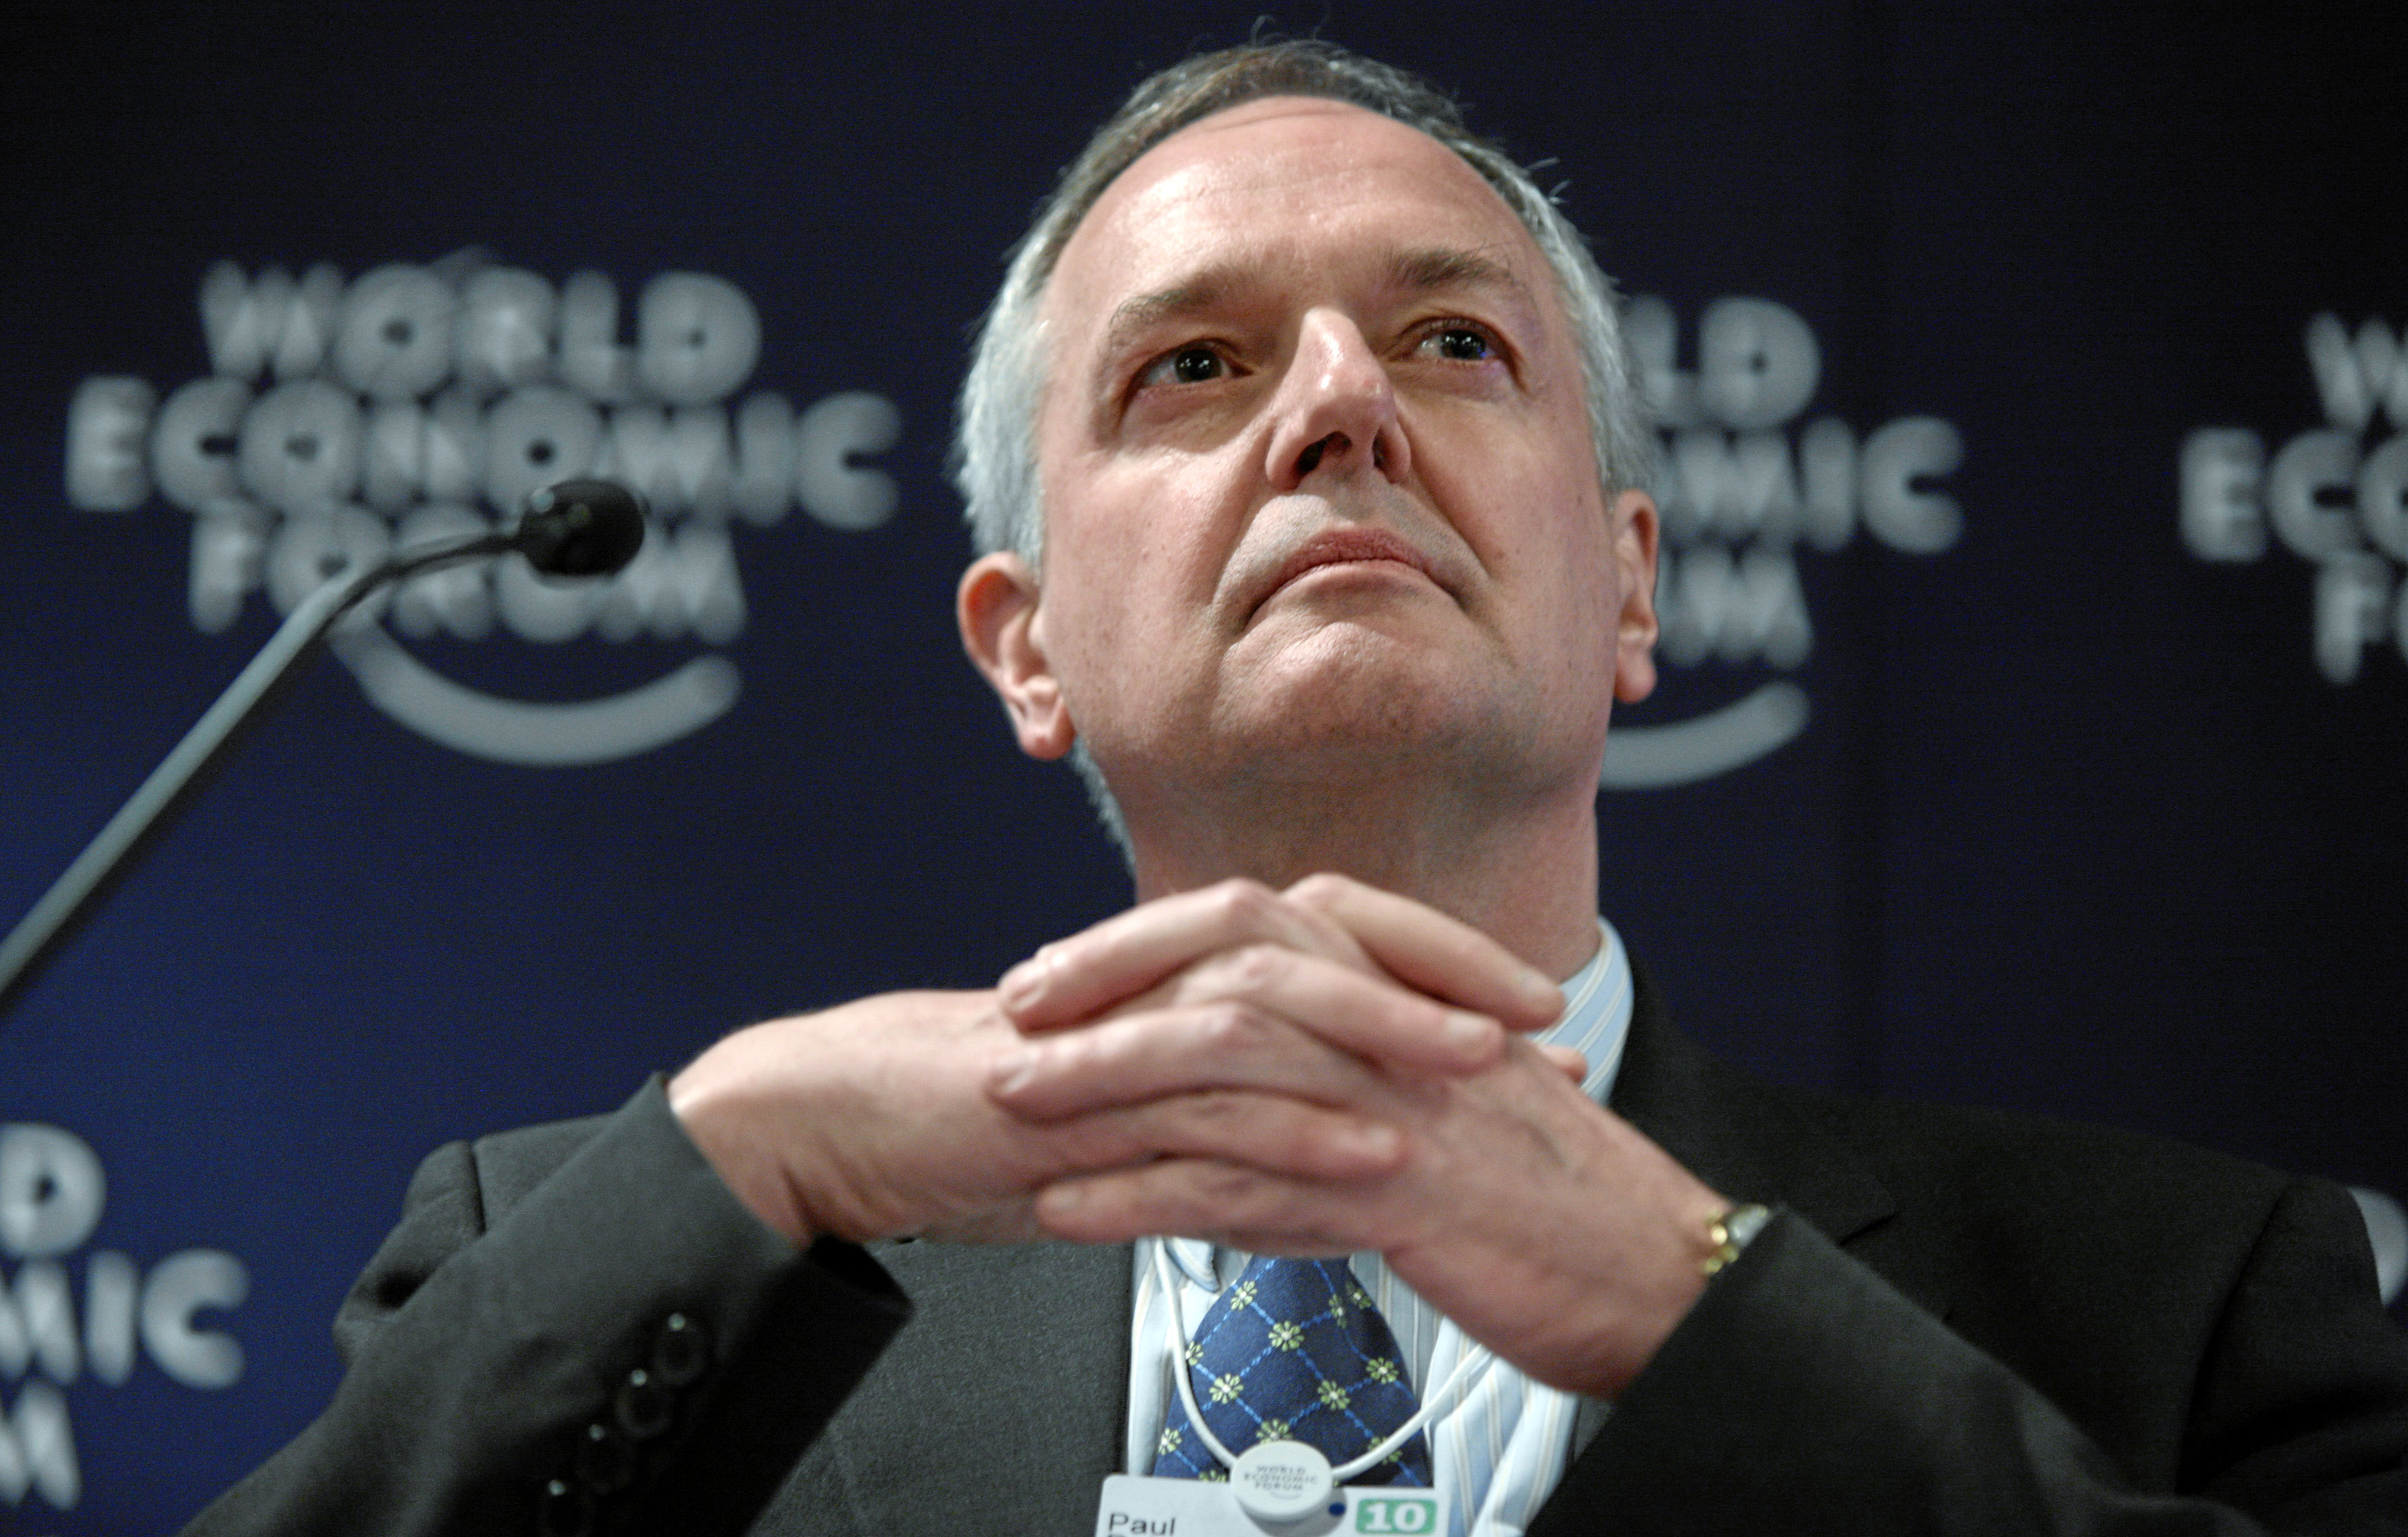 DAVOS/SWITZERLAND, 28JAN10 - Paul Polman, Chief Executive Officer, Unilever, United Kingdom captured during the session 'Redesigning Consumption Patterns' at the Congress Centre at the Annual Meeting 2010 of the World Economic Forum in Davos, Switzerland, January 28, 2010. Copyright by World Economic Forum swiss-image.ch/Photo by Sebastian Derungs